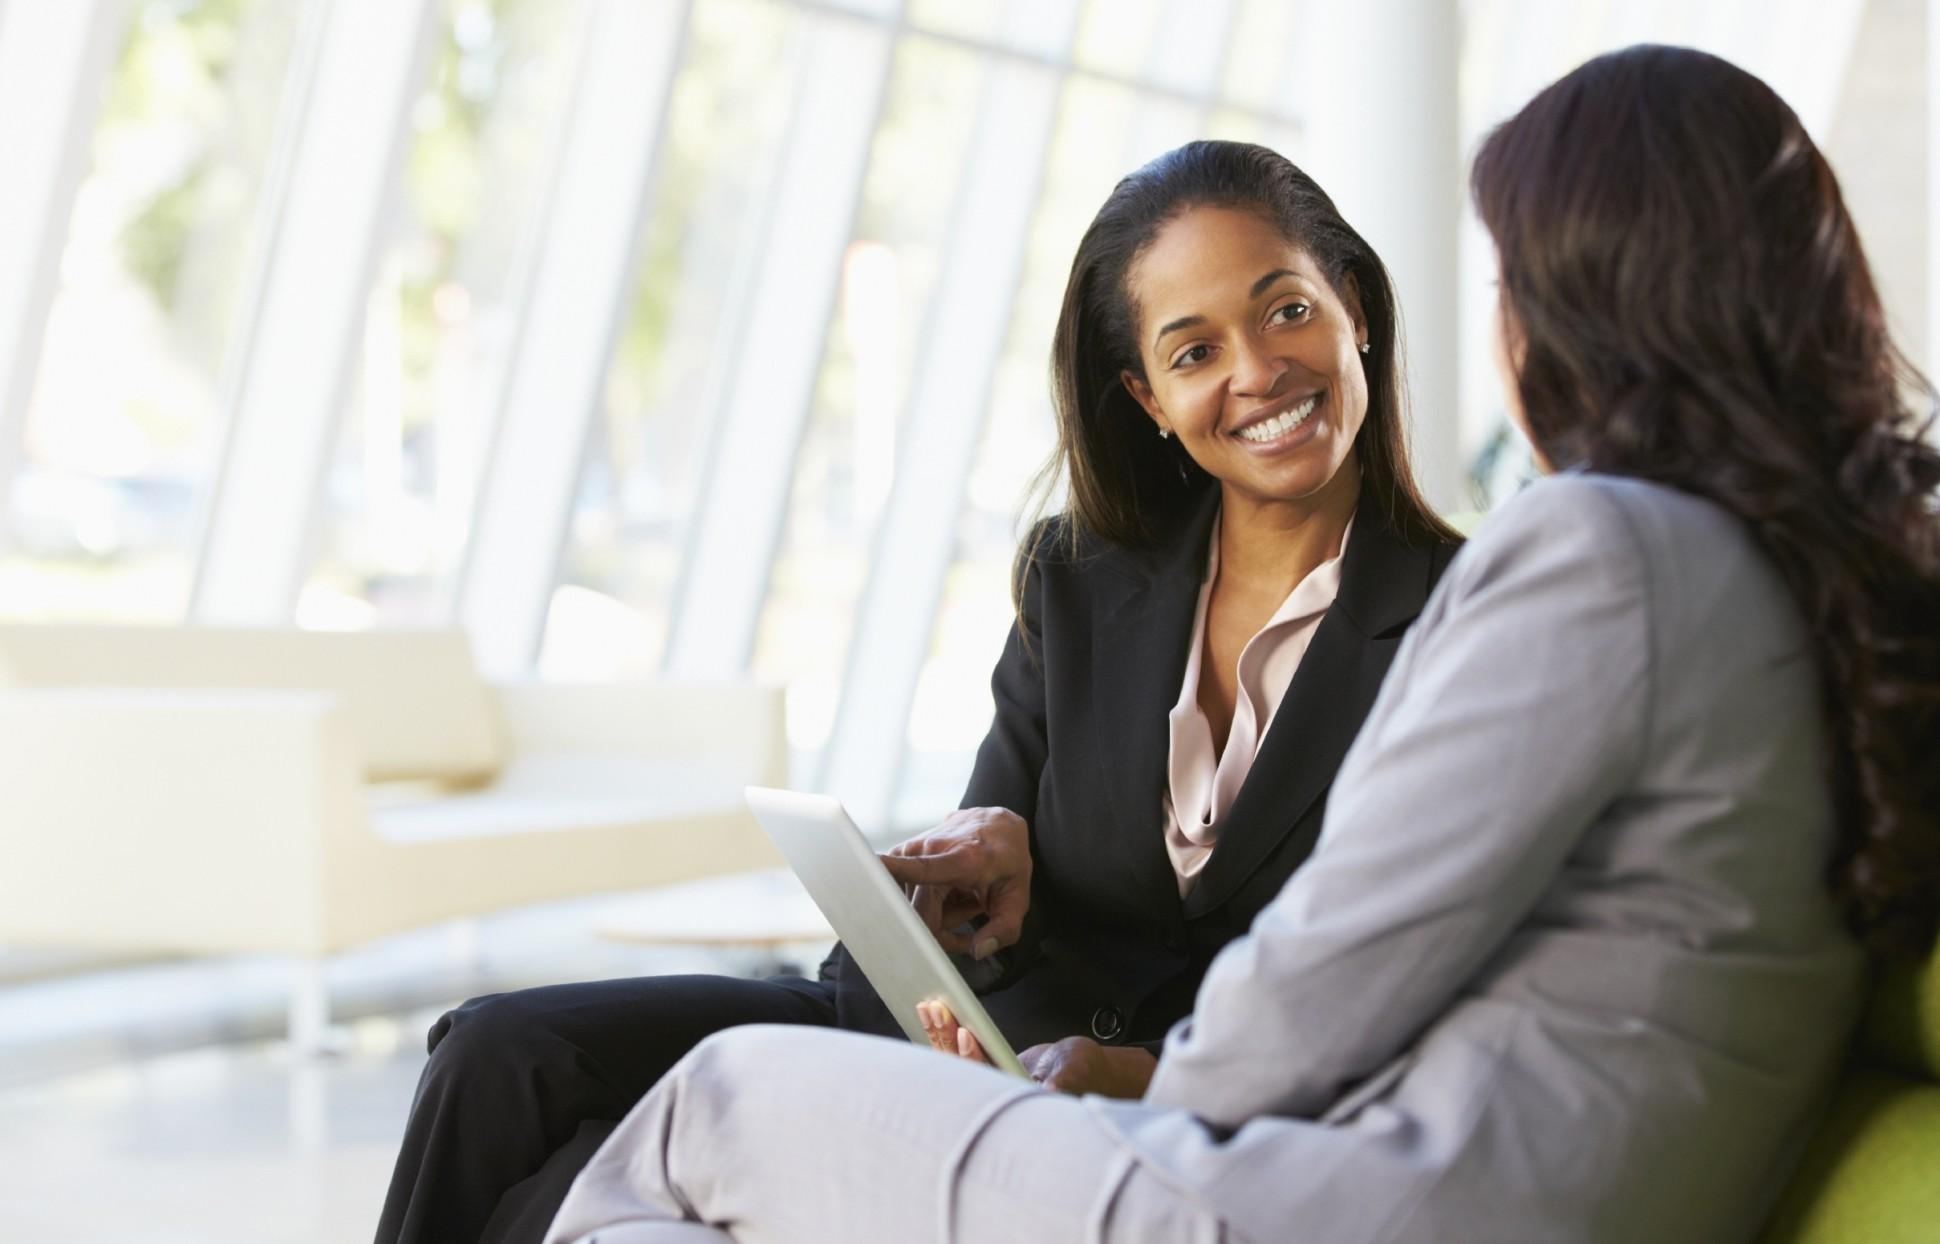 Coaching with tablet Businesswomen-With-Digital-Tablet-Sitting-In-Modern-Office-1940x1244.jpg